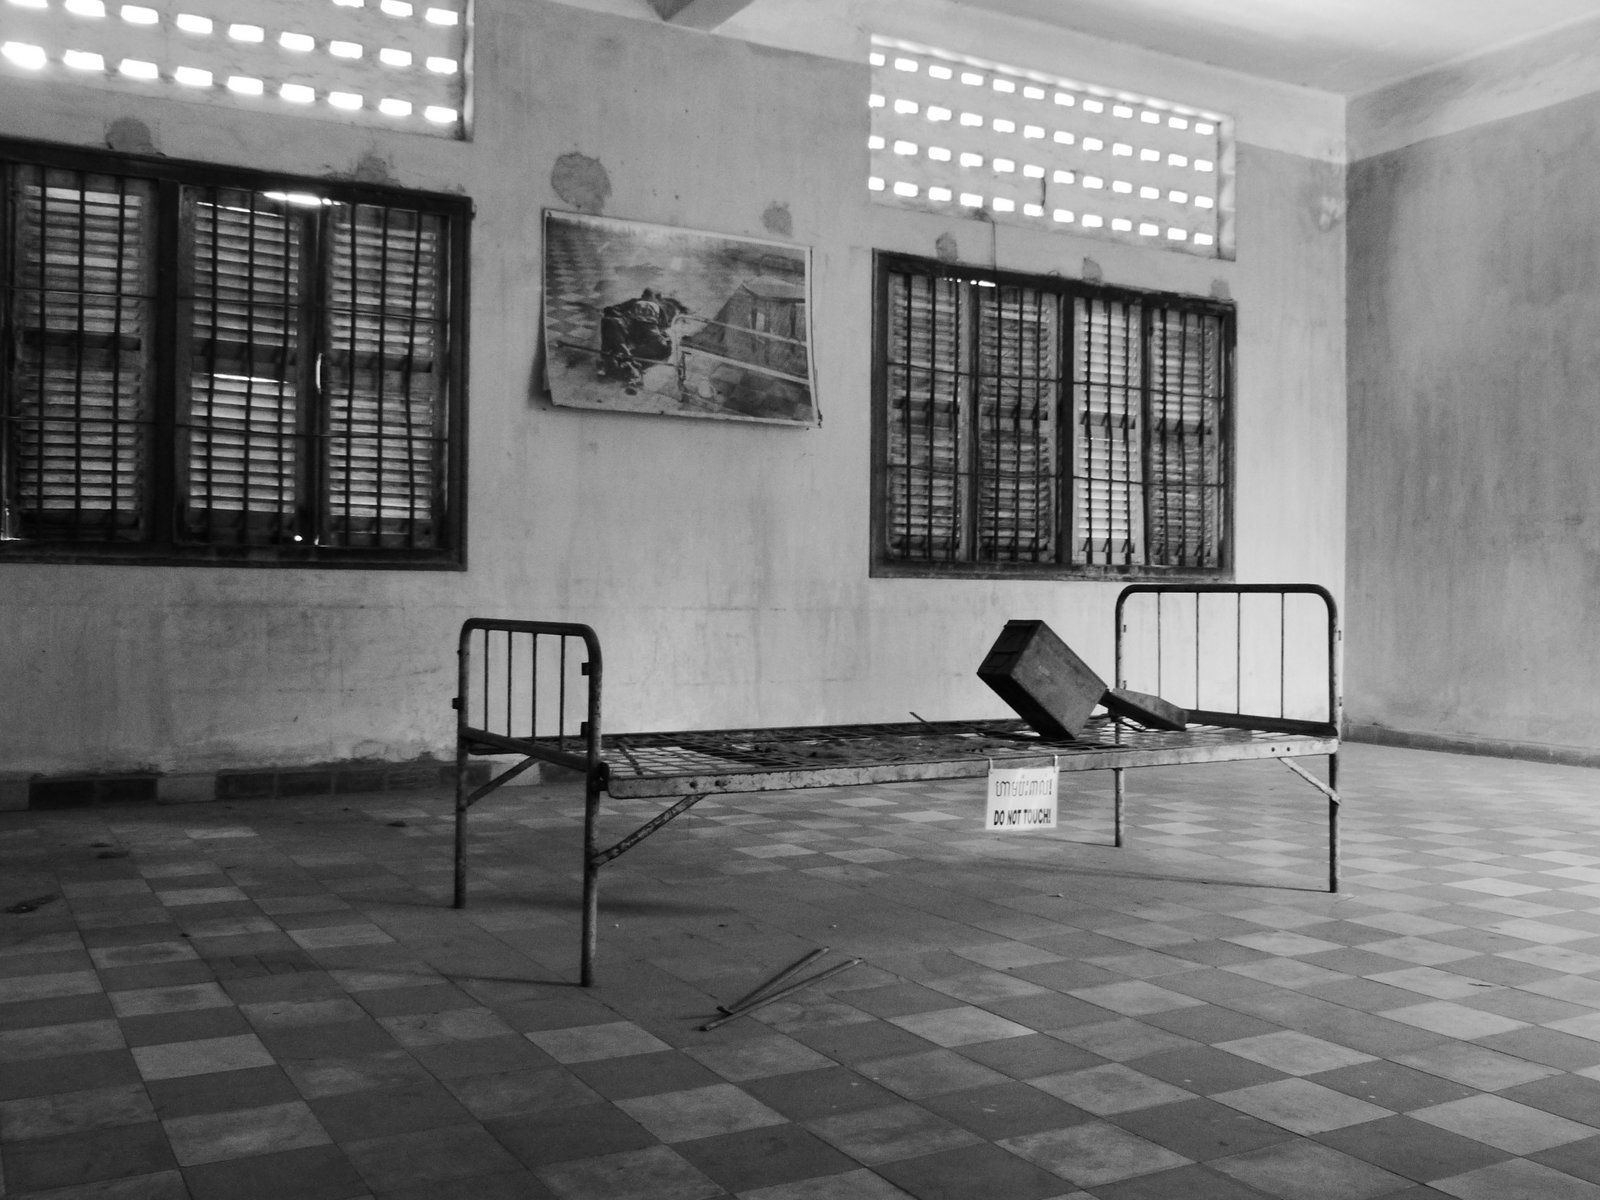 The Khmer Rouge kept detailed records and photographs. Hanging on the wall of this old classroom is a graphic photograph of a prisoner who was tortured in this very room on this very bed, most likely until he either confessed or died.